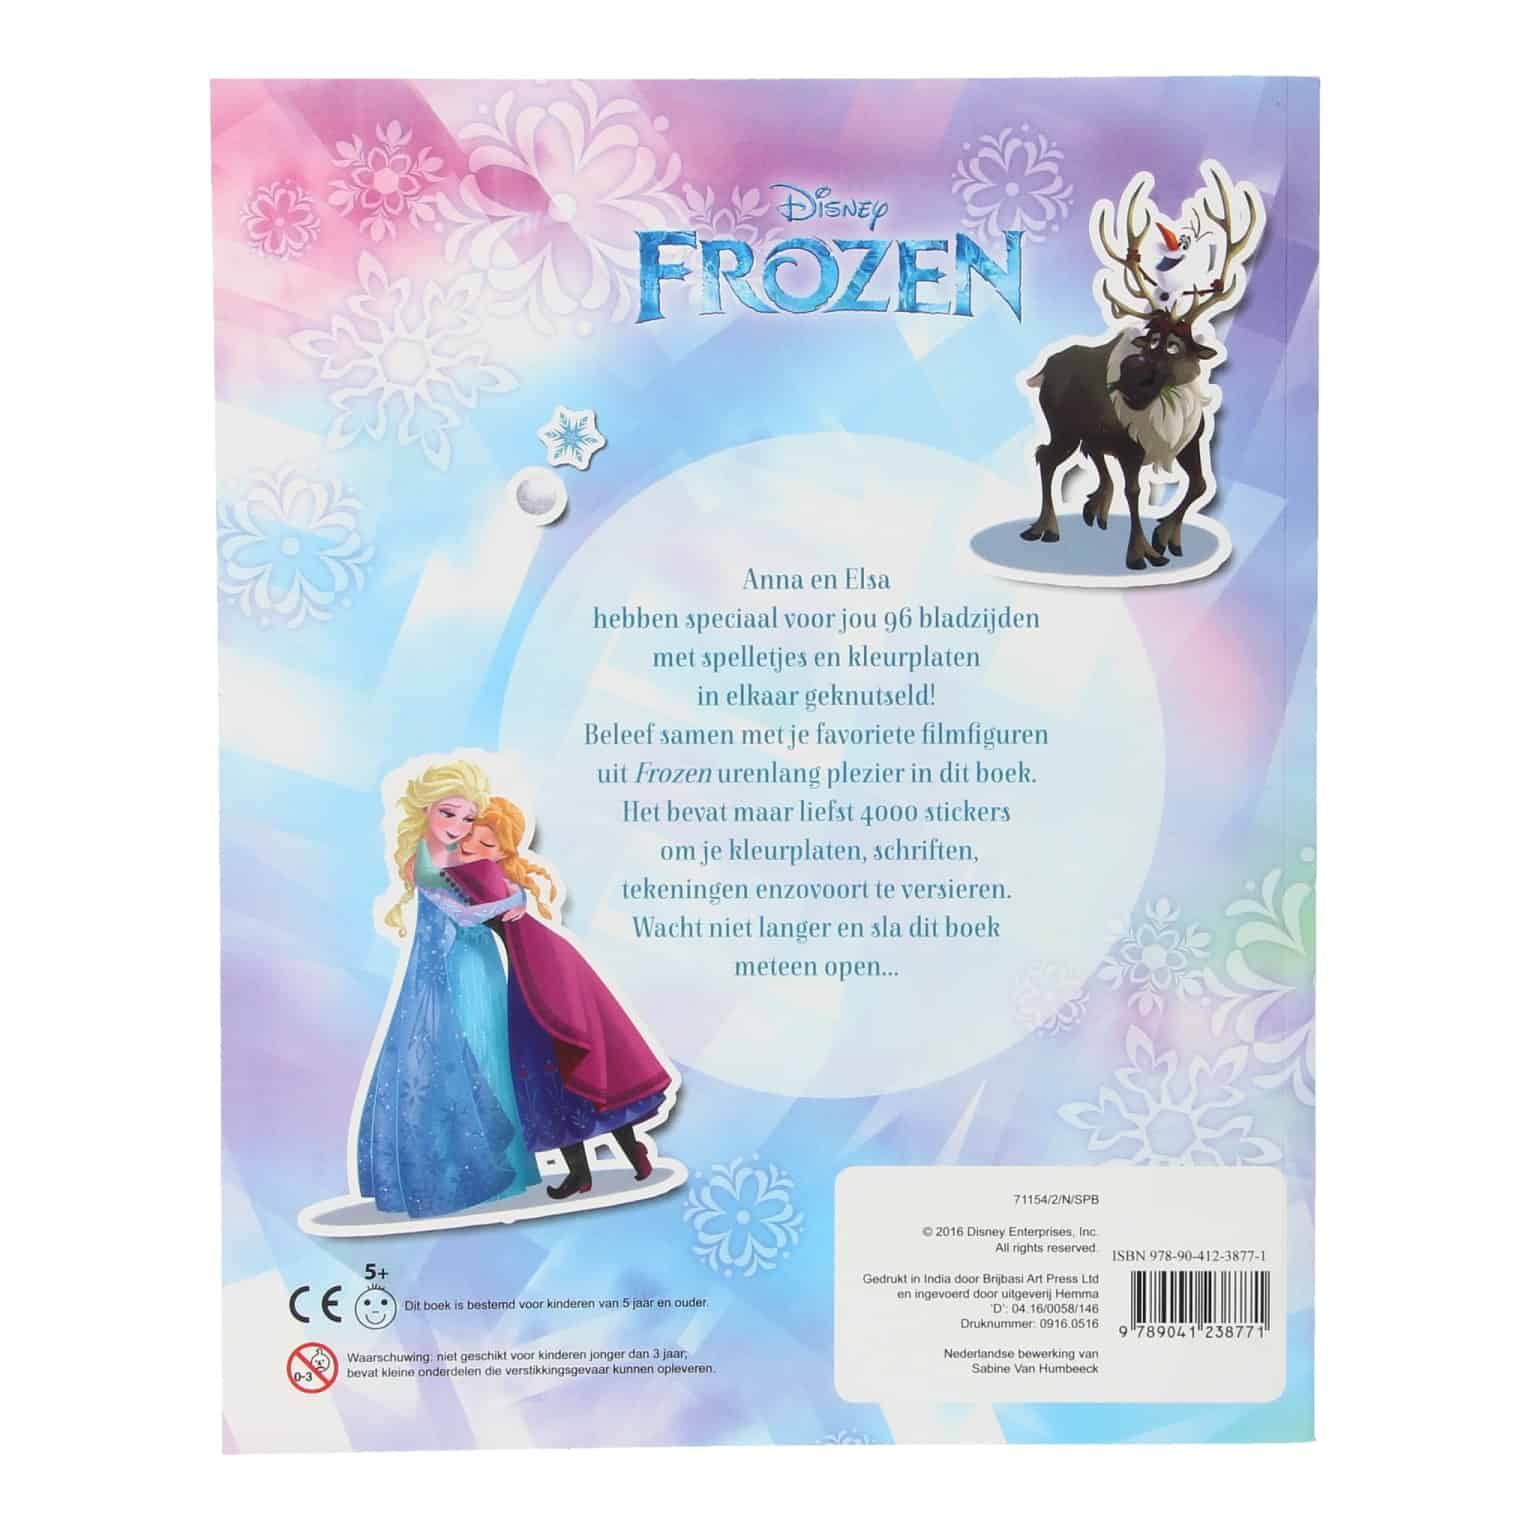 Kinder Kleurplaten Van Disney.Disney Frozen 4000 Stickerboek